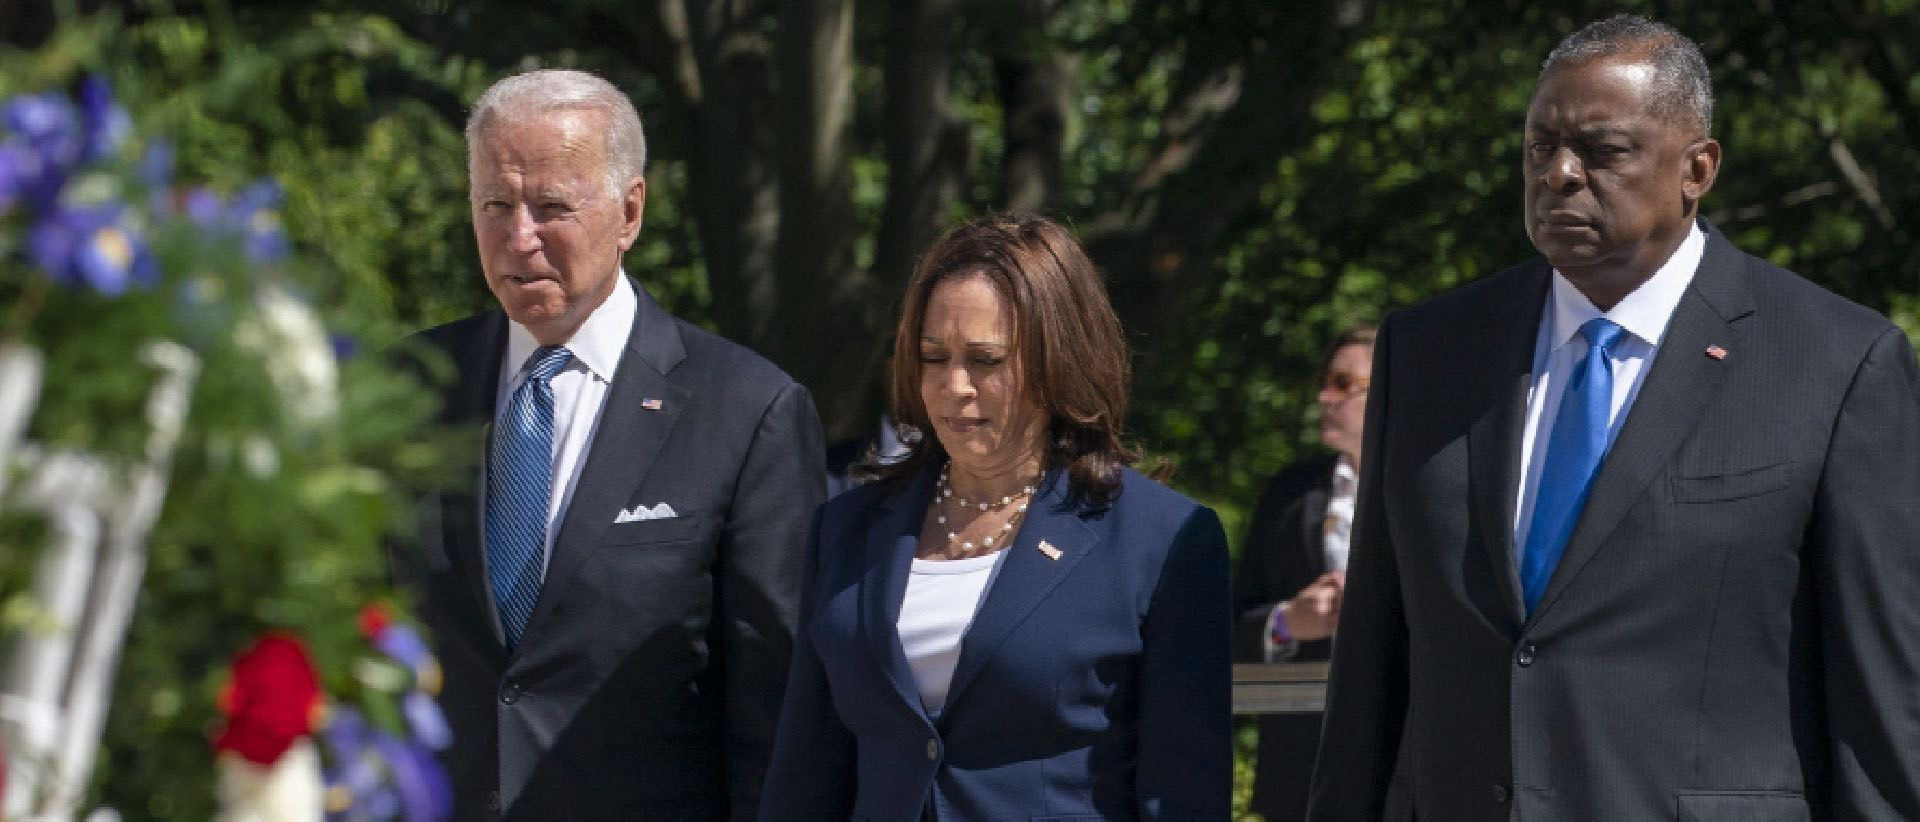 U.S. President Joe Biden, from left, U.S. Vice President Kamala Harris, and Lloyd Austin, U.S. secretary of defense, arrive for a wreath laying ceremony at the Tomb of the Unknown Soldier at Arlington National Cemetery in Arlington, Virginia, U.S., on Monday, May 31, 2021. Biden's $6 trillion budget request proposes record spending to reduce historical disparities in underserved communities, following his campaign pledge to promote racial equity as an inseparable part of rebuilding the economy. Photographer: Tasos Katopodis/UPI/Bloomberg via Getty Images